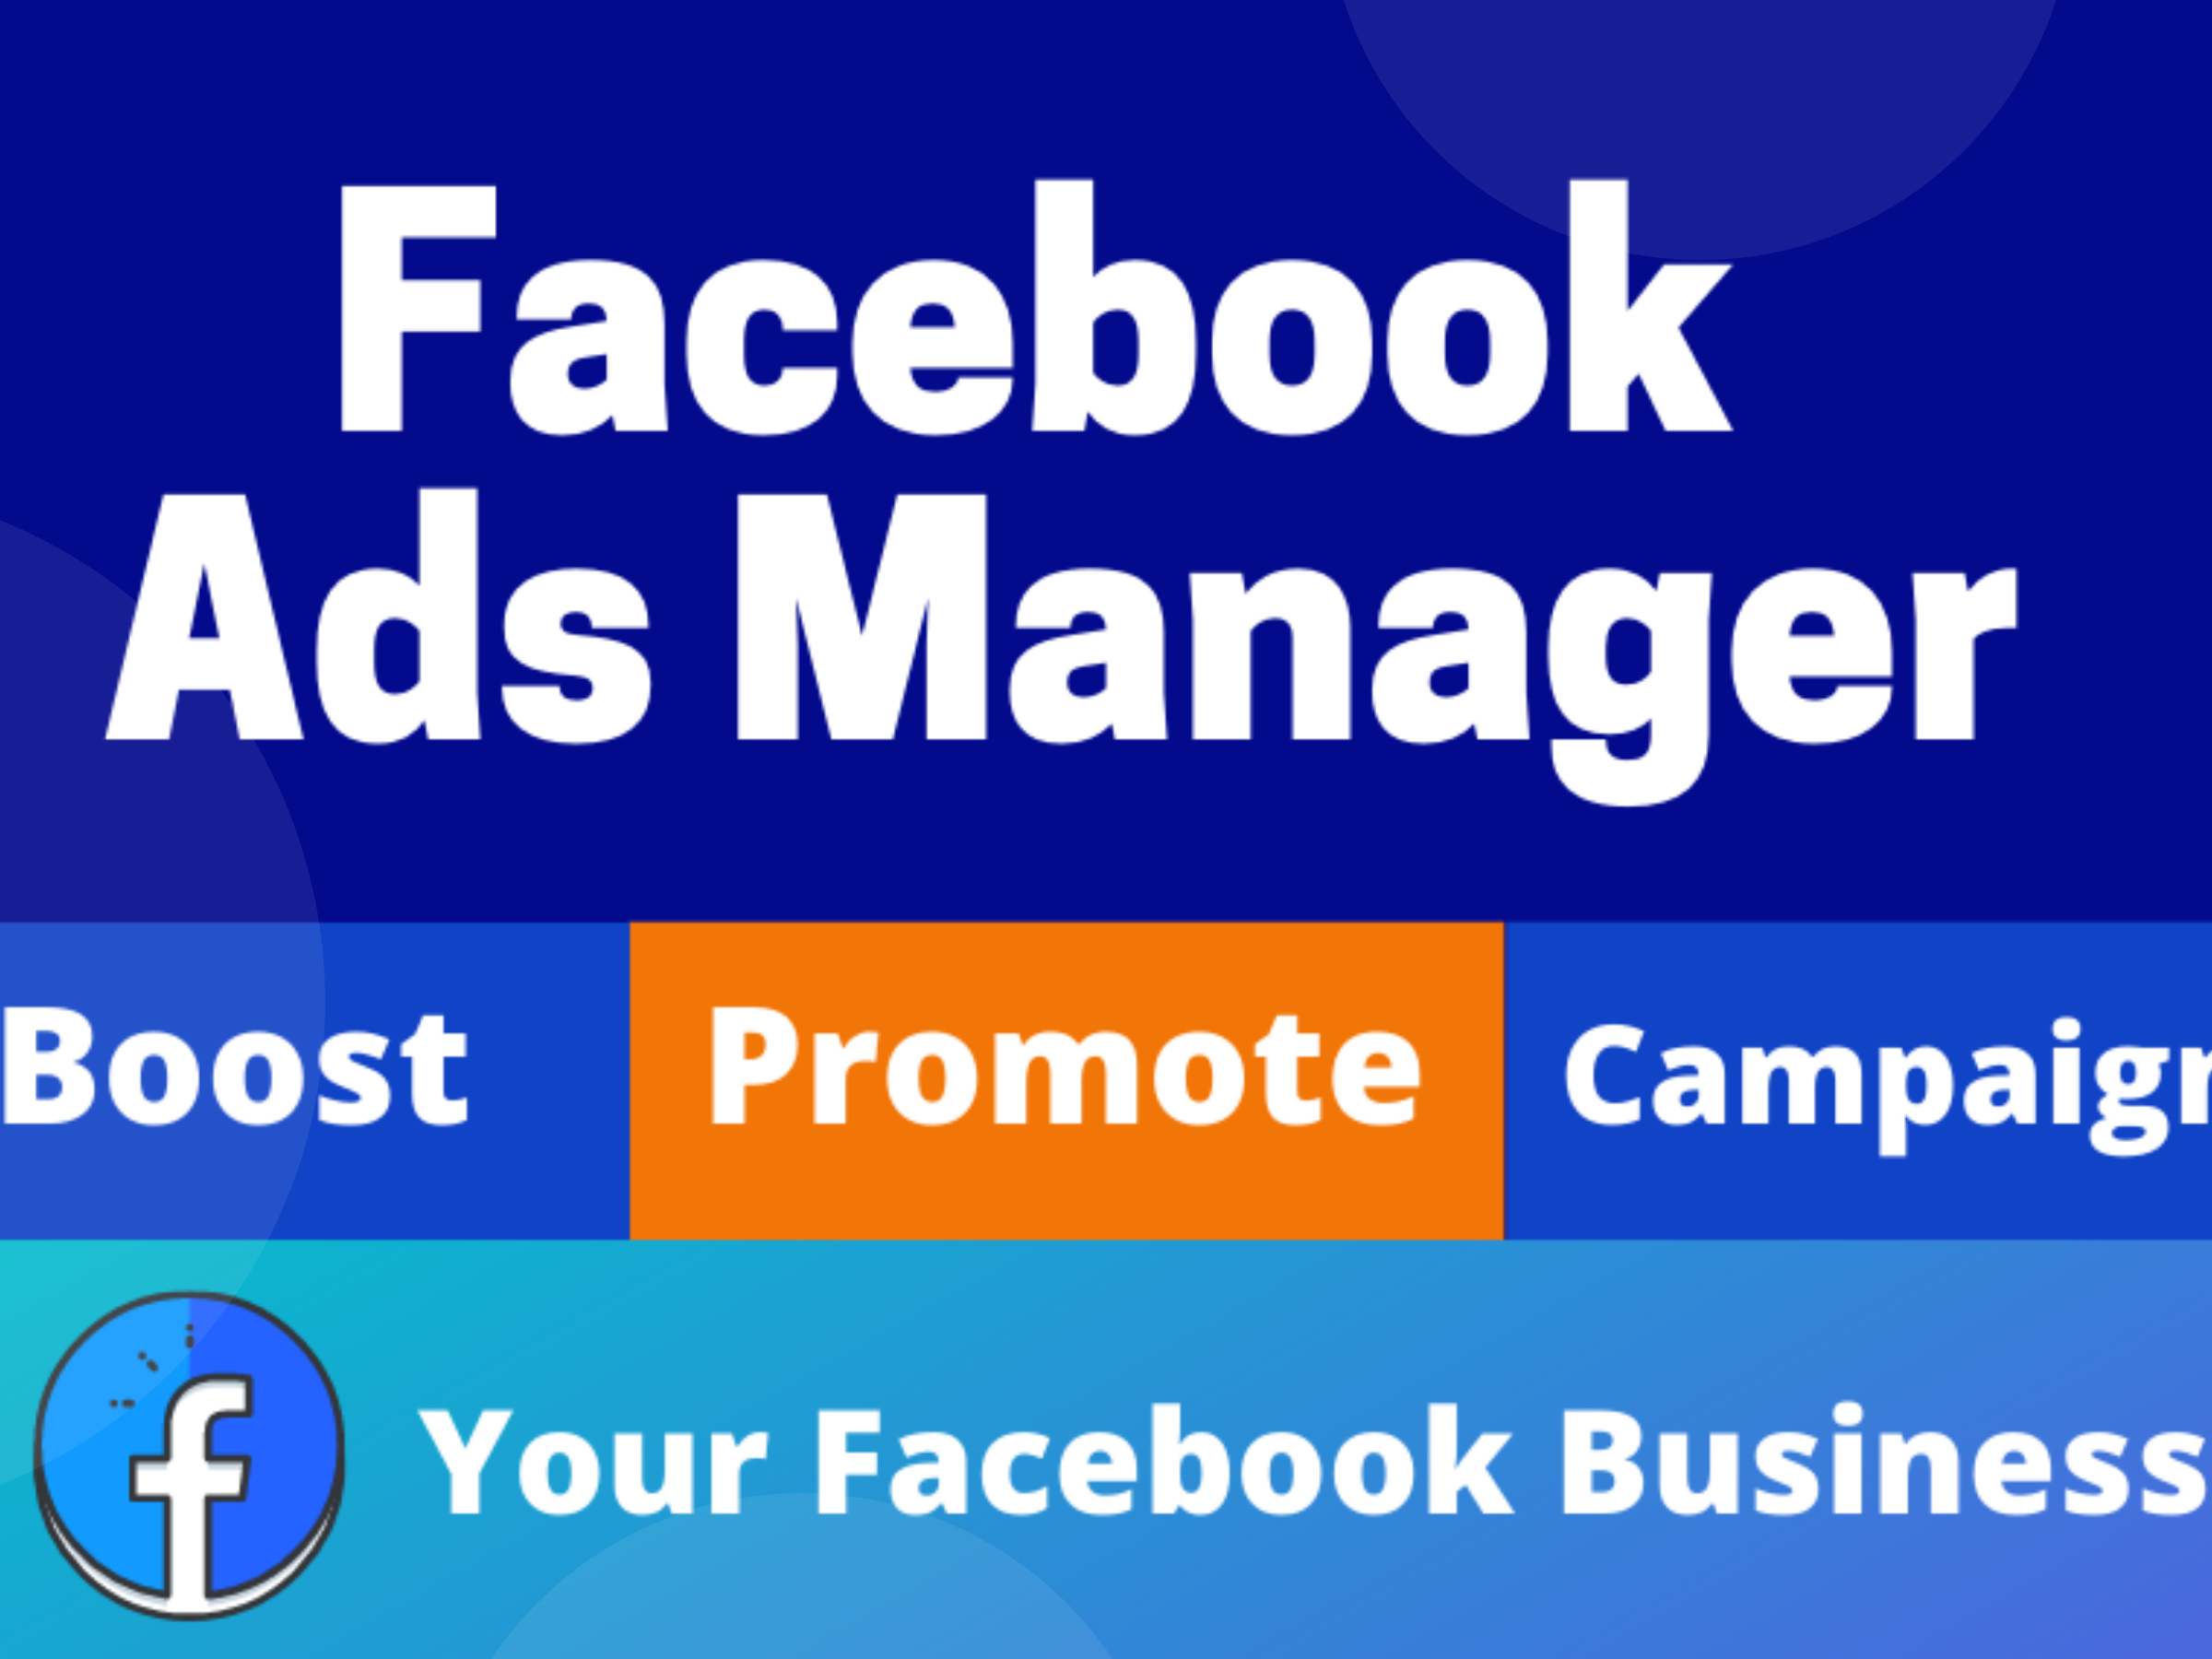 I will be your facebook ads manager and run ads campaign